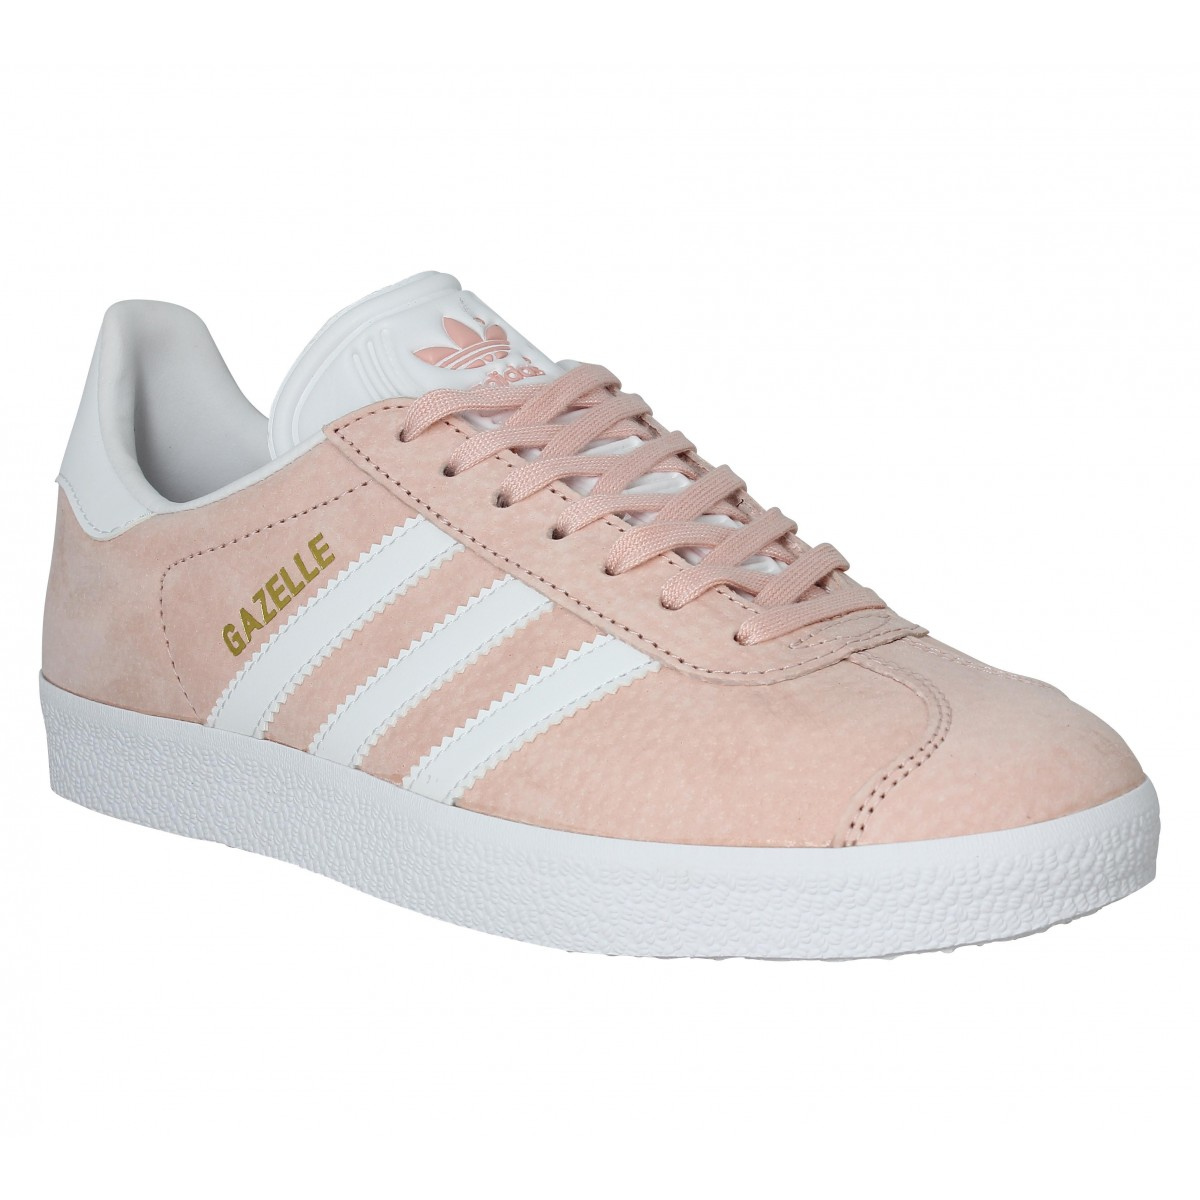 sneakers for cheap 9d2cb a9e91 Baskets ADIDAS Gazelle Rose Vapeur